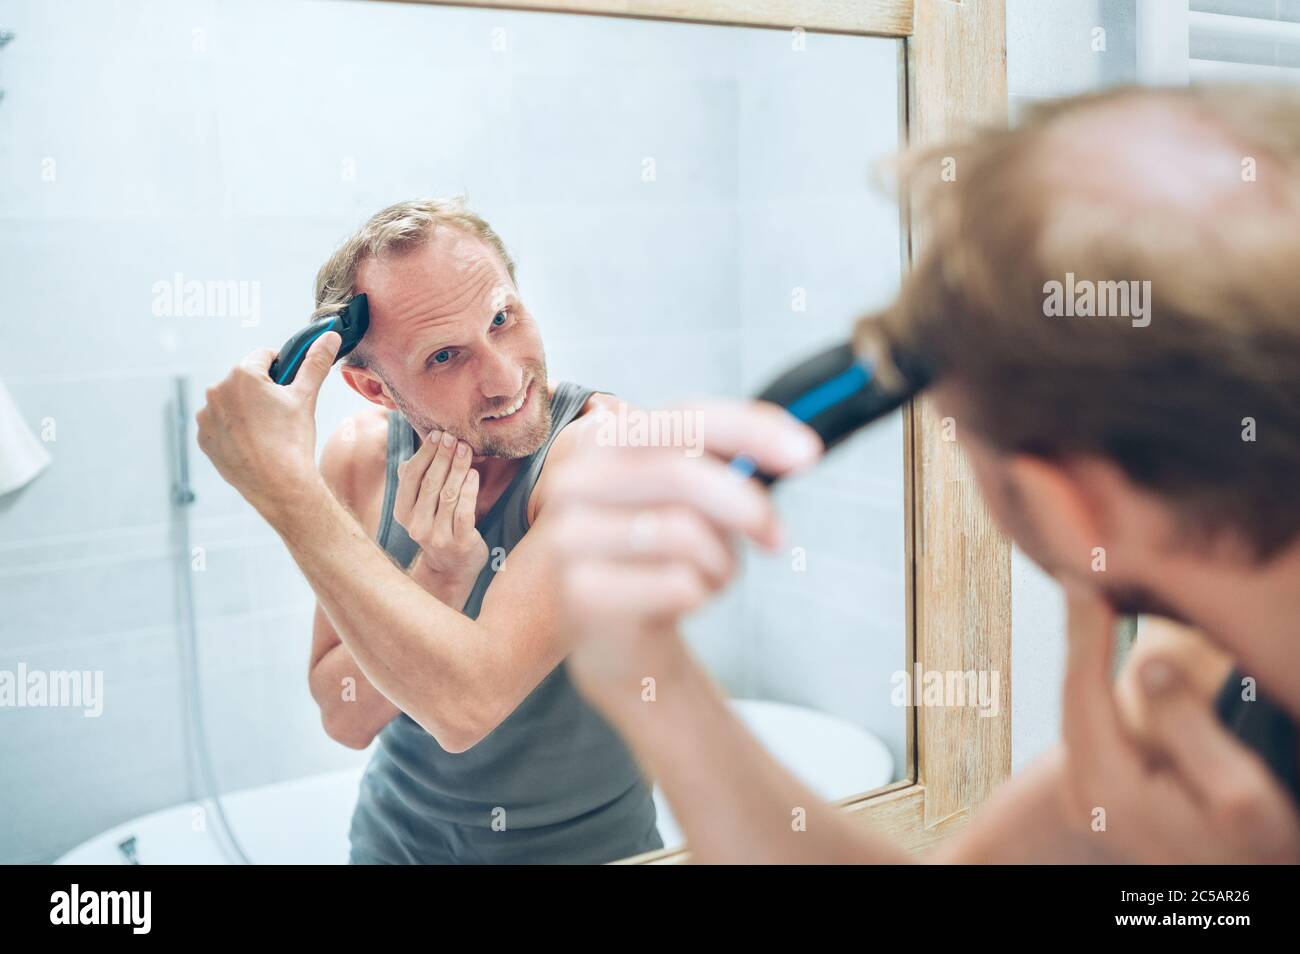 Body and skincare treatment concept. Smiling Man making new style haircut trimming a hairs using an electric rechargeable Trimmer looking in bathroom Stock Photo